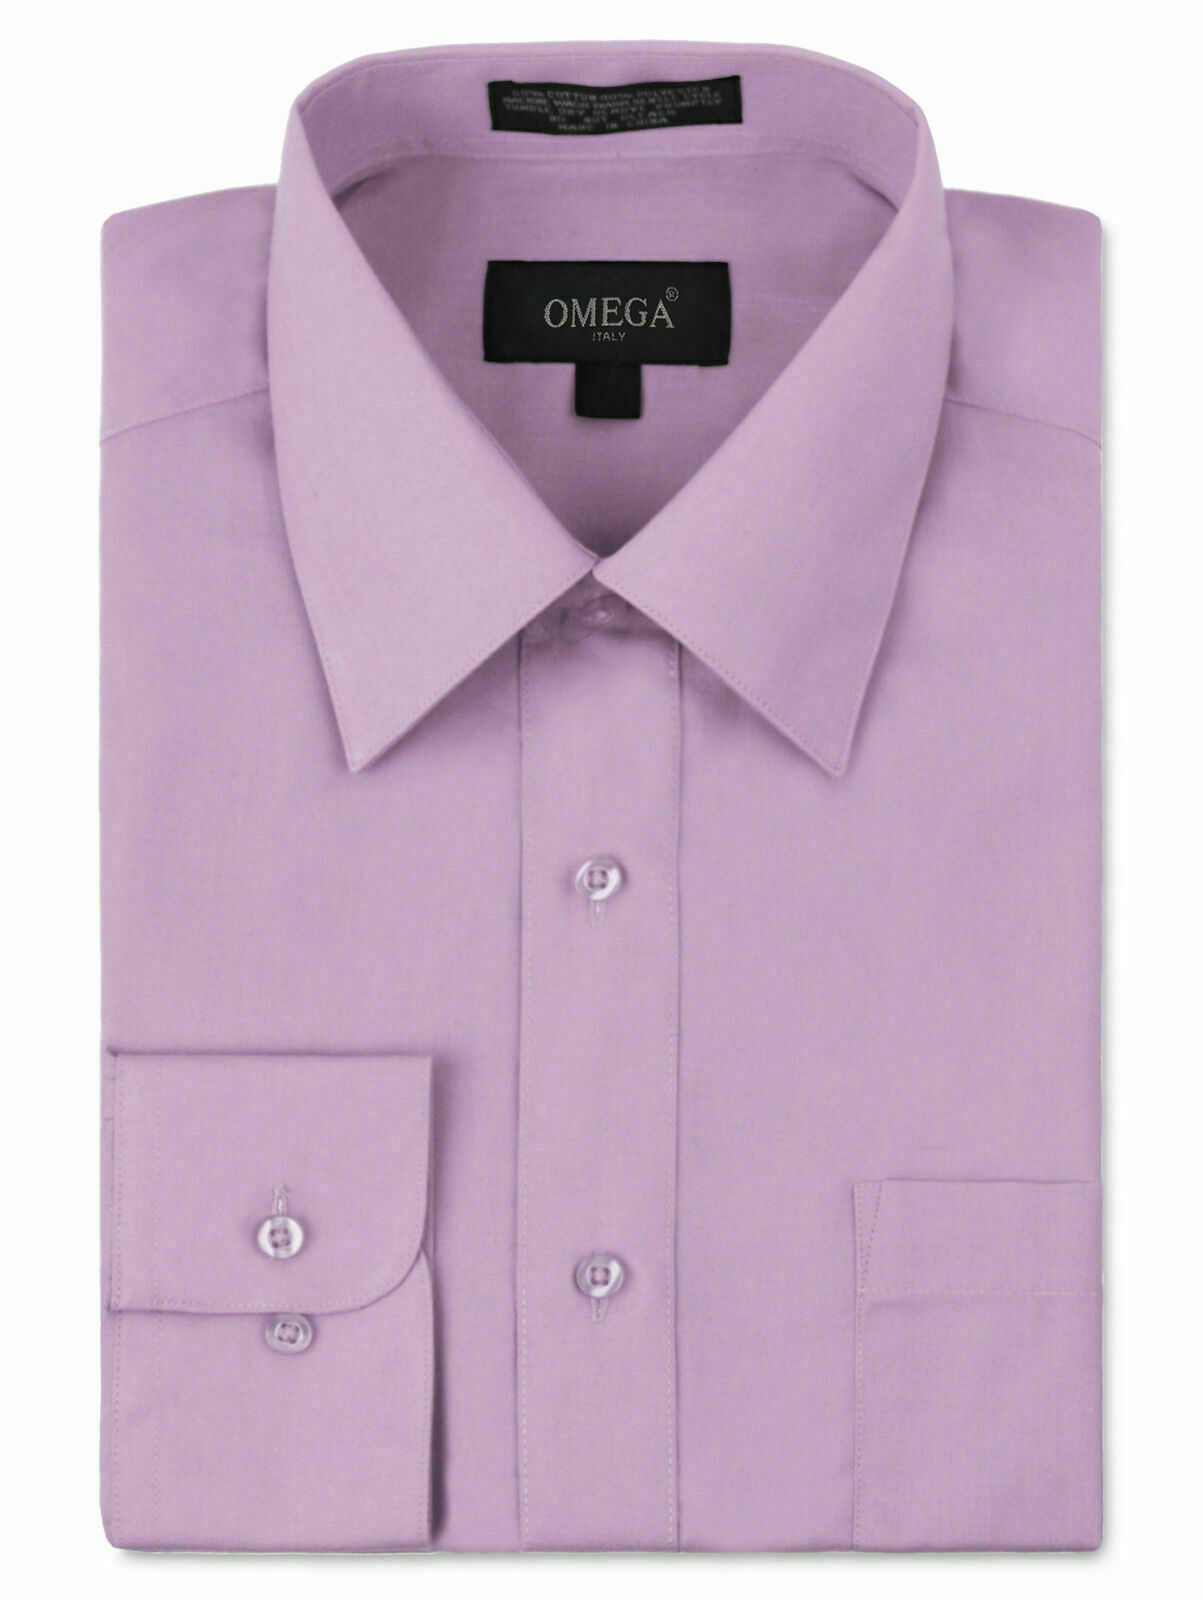 Omega Italy Men's Long Sleeve Solid Lilac Button Up Dress Shirt - S